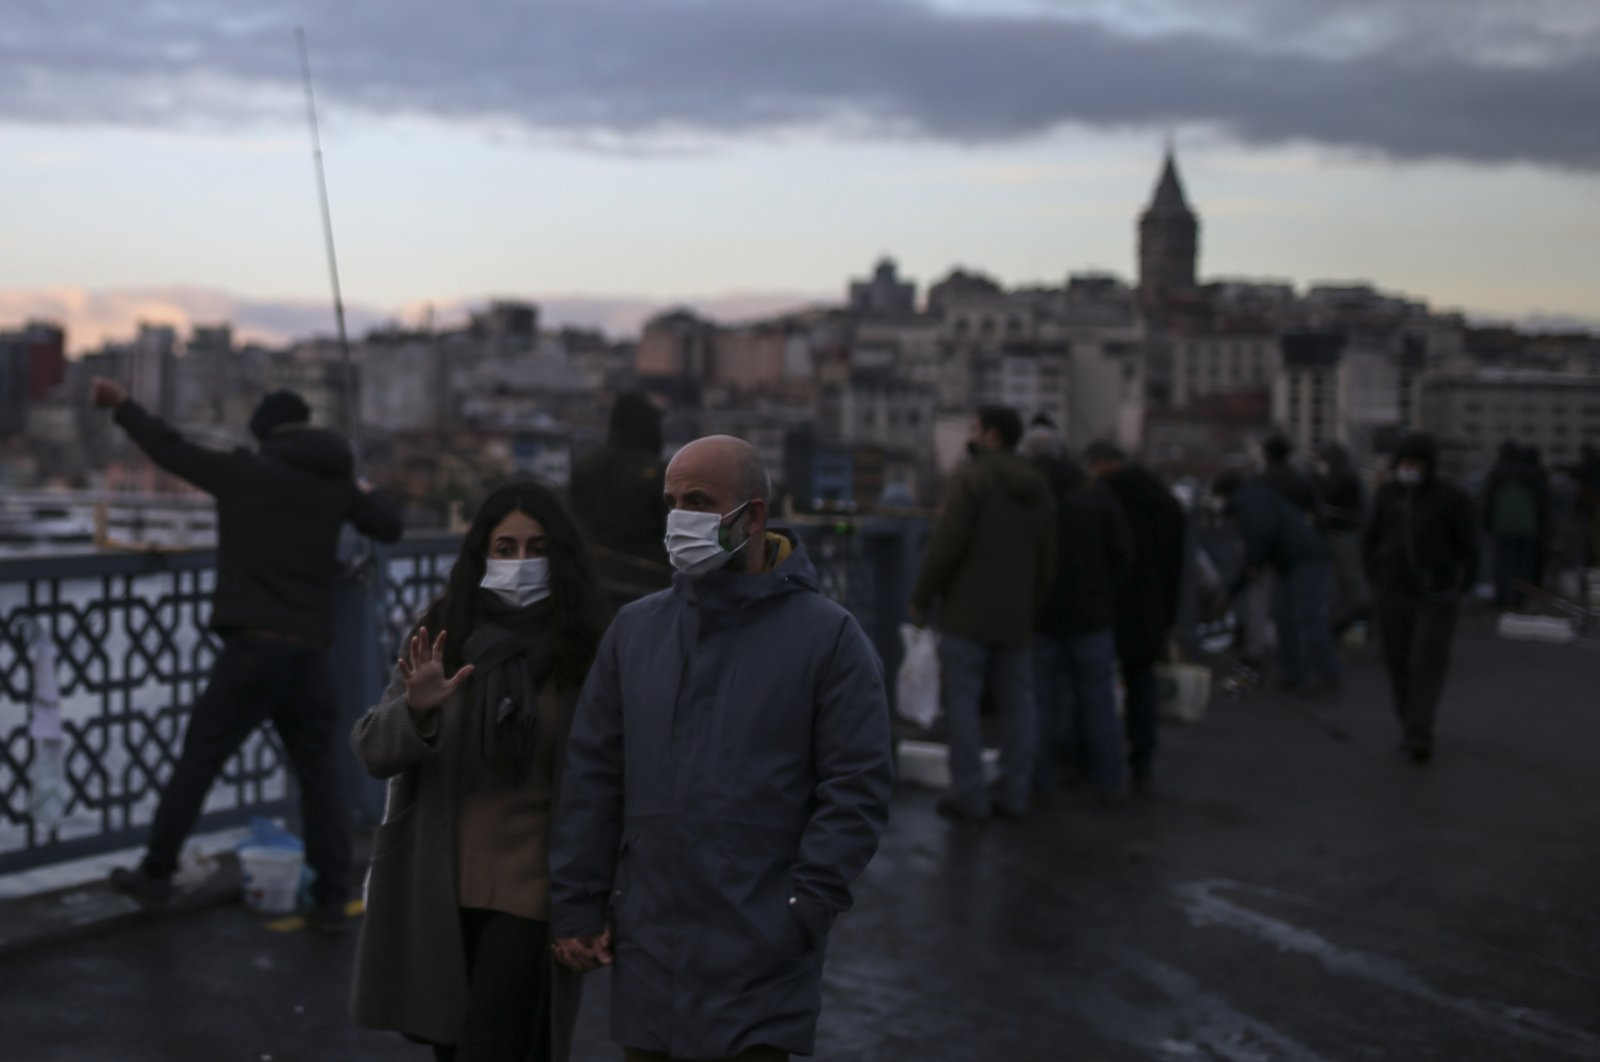 People, wearing protective masks to help curb the spread of the coronavirus, walk on the Galata Bridge over the Golden Horn in Istanbul, Monday, Dec. 21, 2020. (AP)